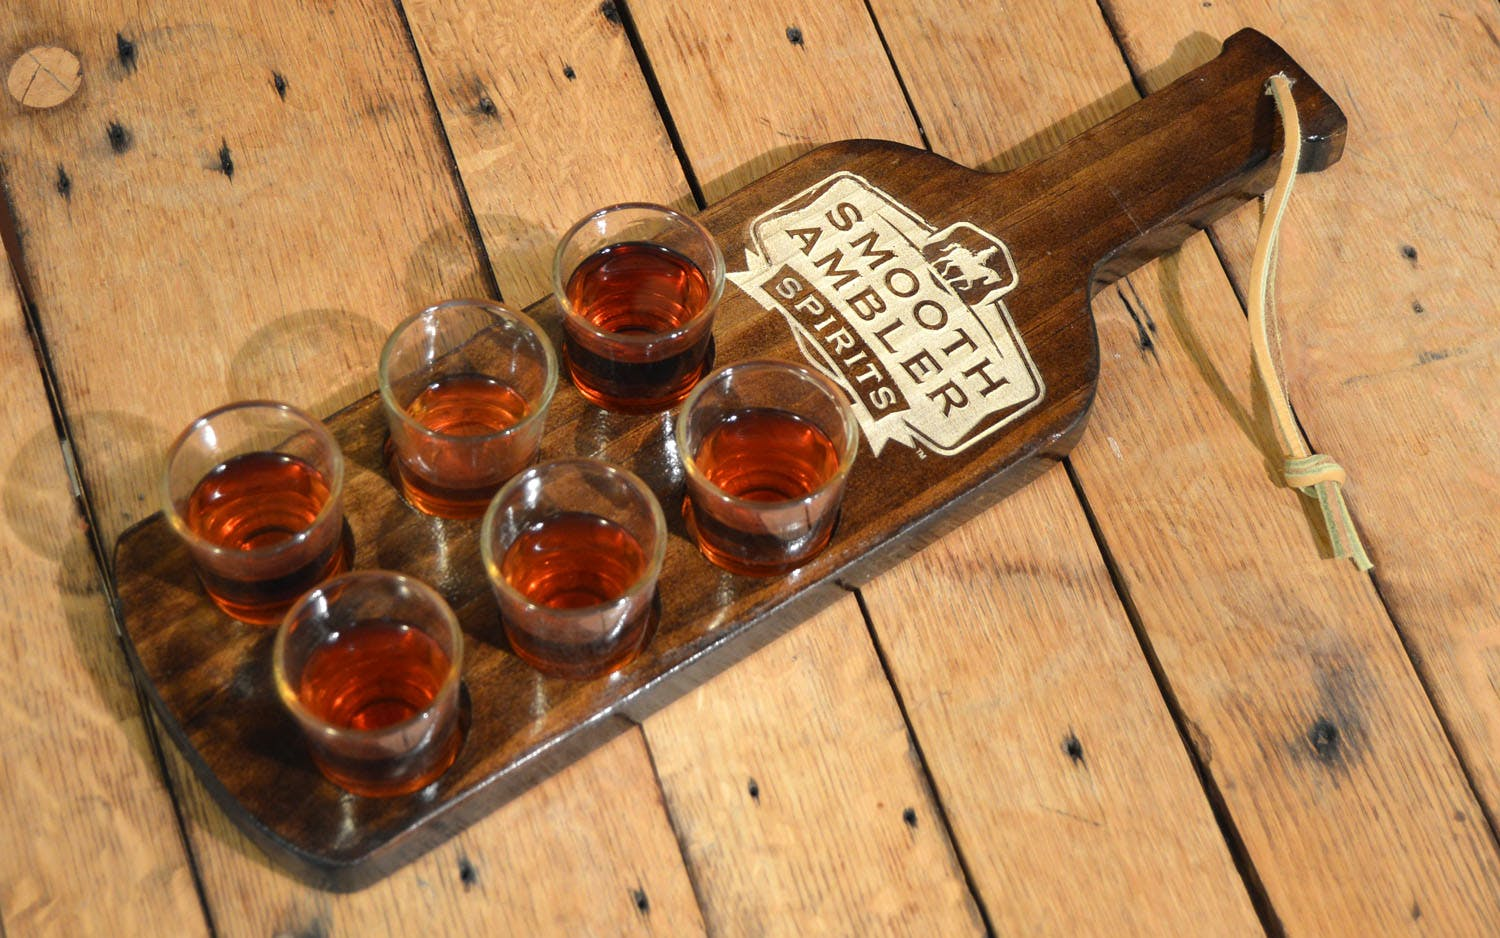 Custom Shot Paddles Barrel sold by Thousand Oaks Barrel Co.